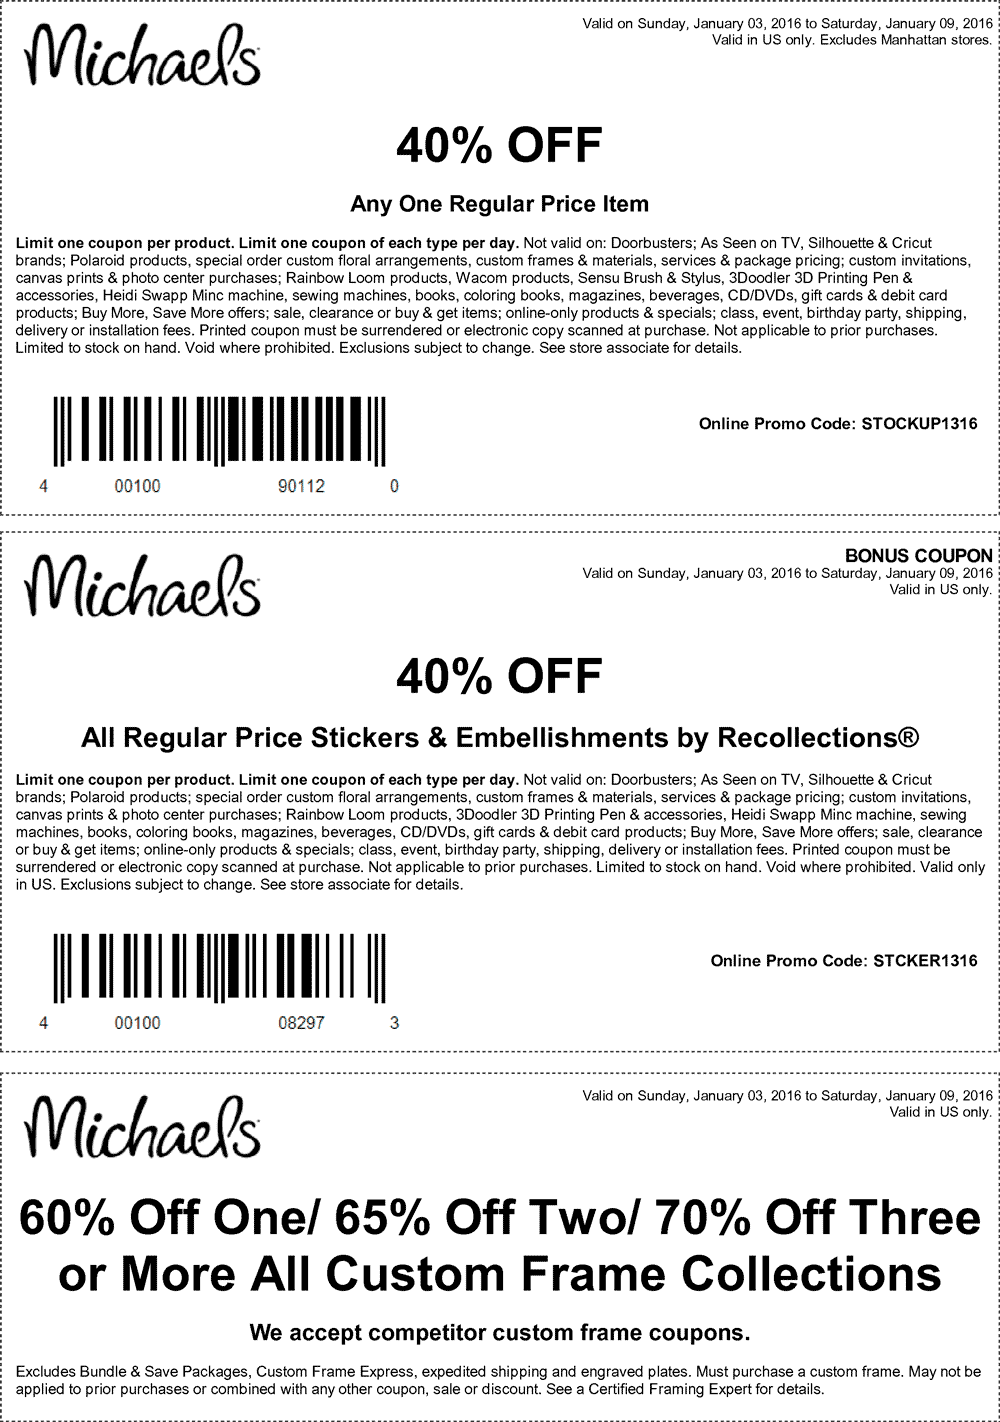 Michaels Coupon March 2018 40% off a single item & more at Michaels, or online via promo code STOCKUP1316